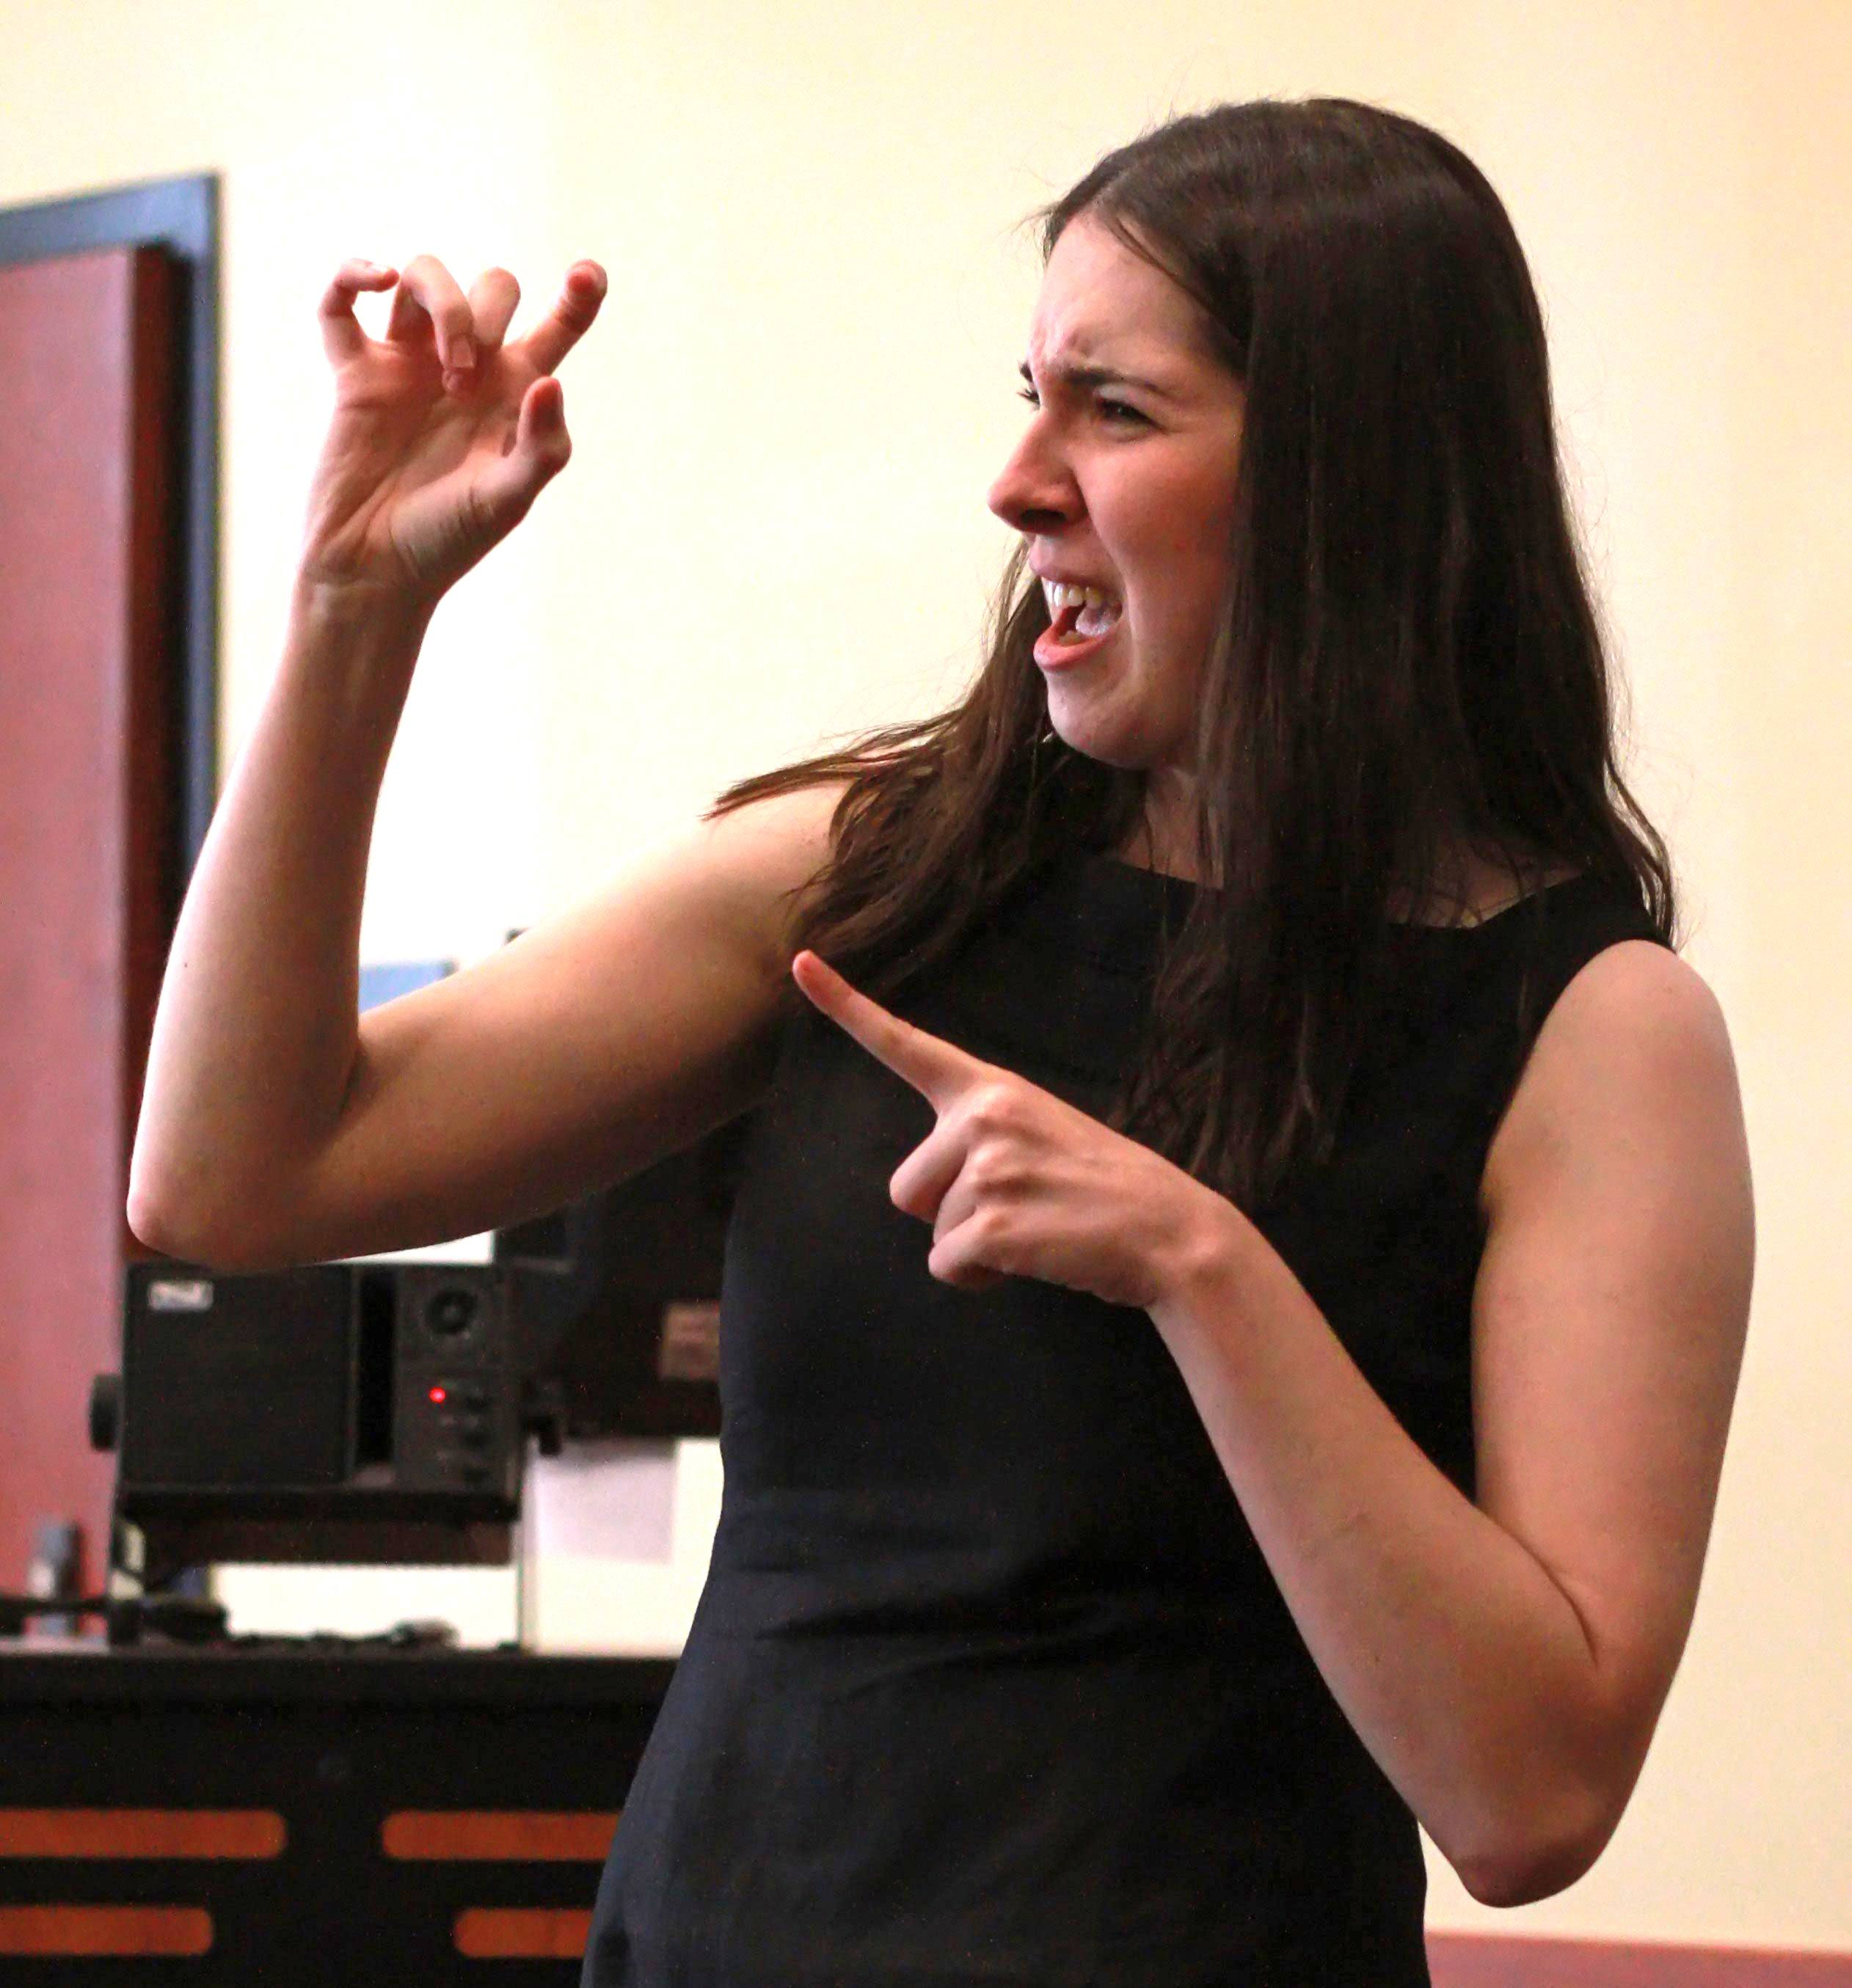 Kaitlyn Mielke performing Defying Gravity (from Wicked) in American Sign Language at the celebration of the 22nd anniversary of the passage of the Americans with Disabilities at a community event in Minneapolis